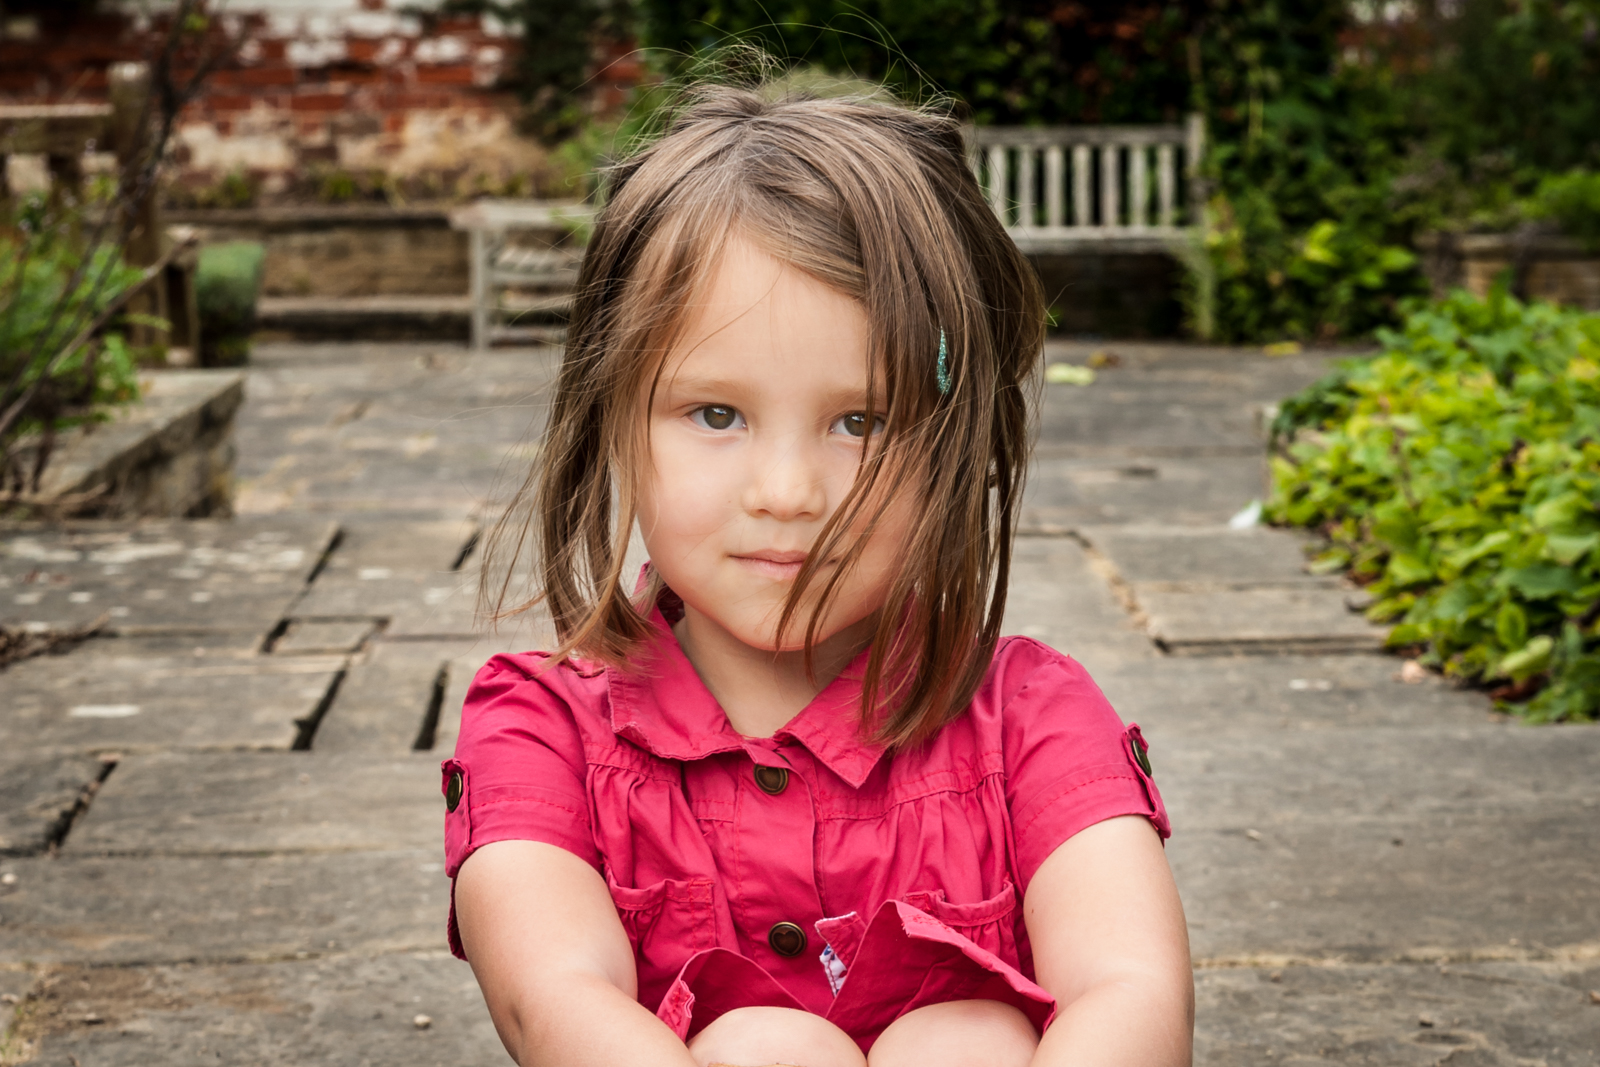 portrait photographer, portrait photography derby, Location family portrait of a young girl sitting in a garden